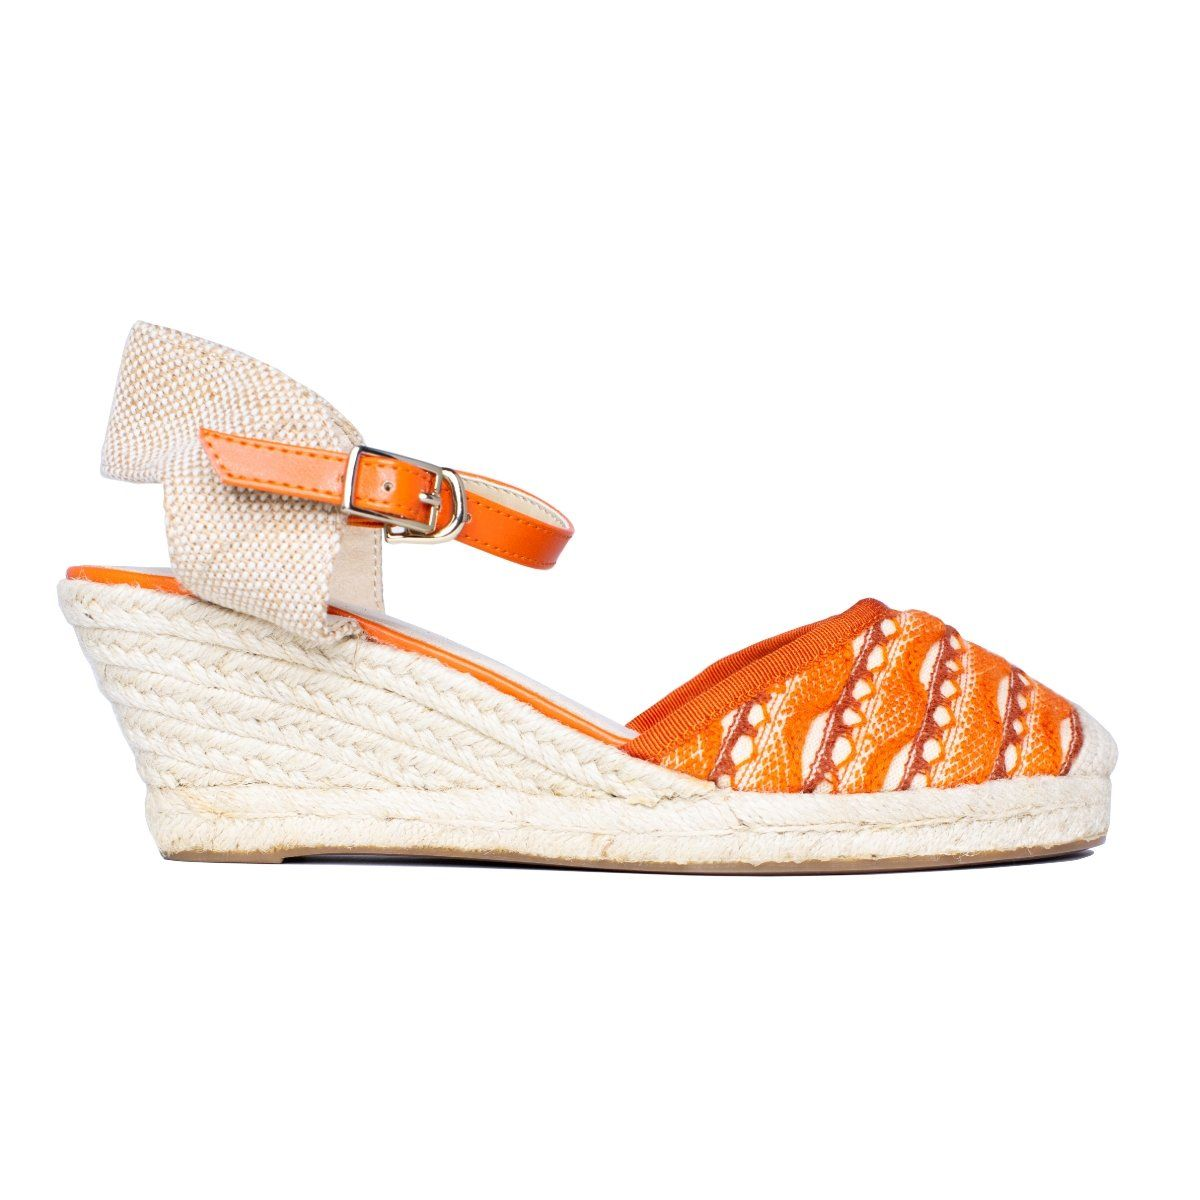 Close side view of knit wedge sandal with buckle and orange cotton pattern